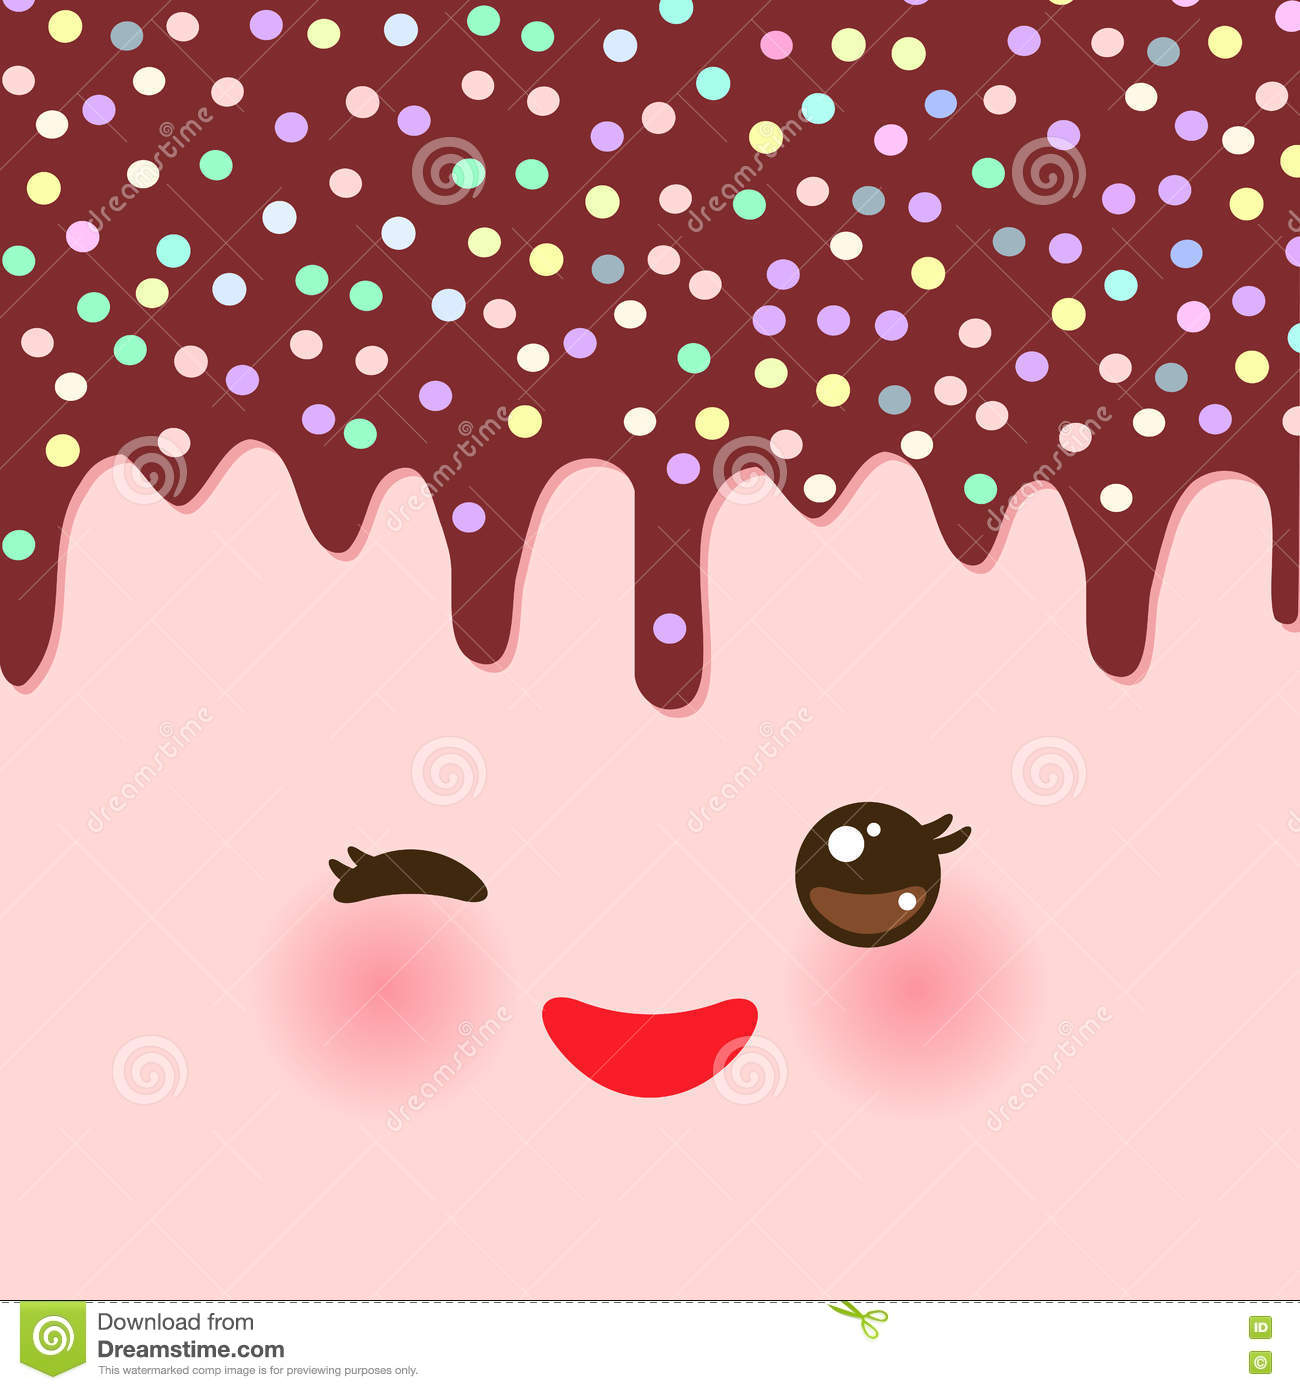 Dripping Melted chocolate Glaze with sprinkles. Kawaii cute face with eyes and smile. pink background for your text. Vector